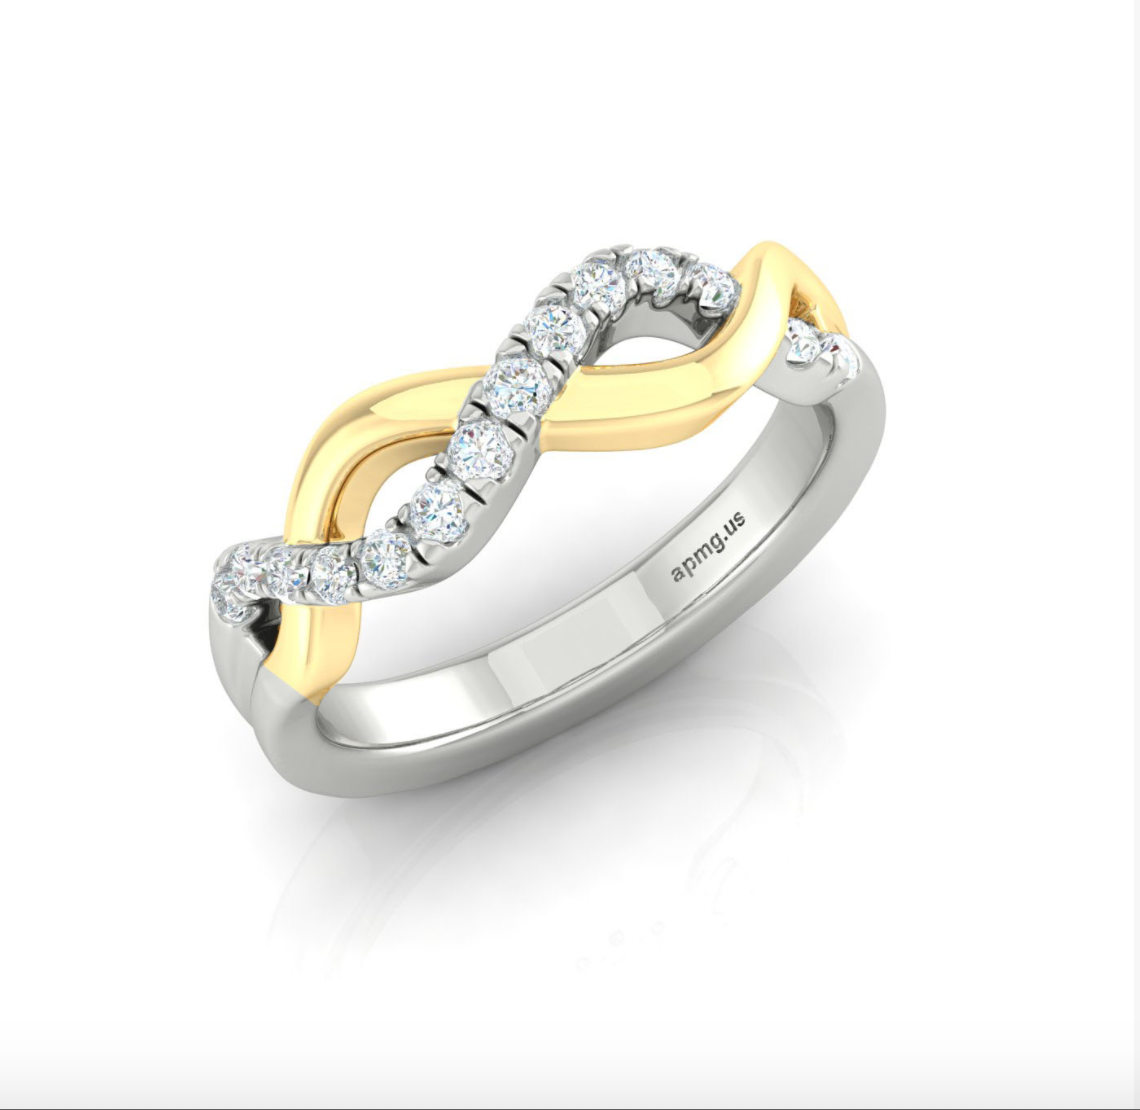 14kt Gold Helix Ring Available in Two-Tone, White or Yellow Gold